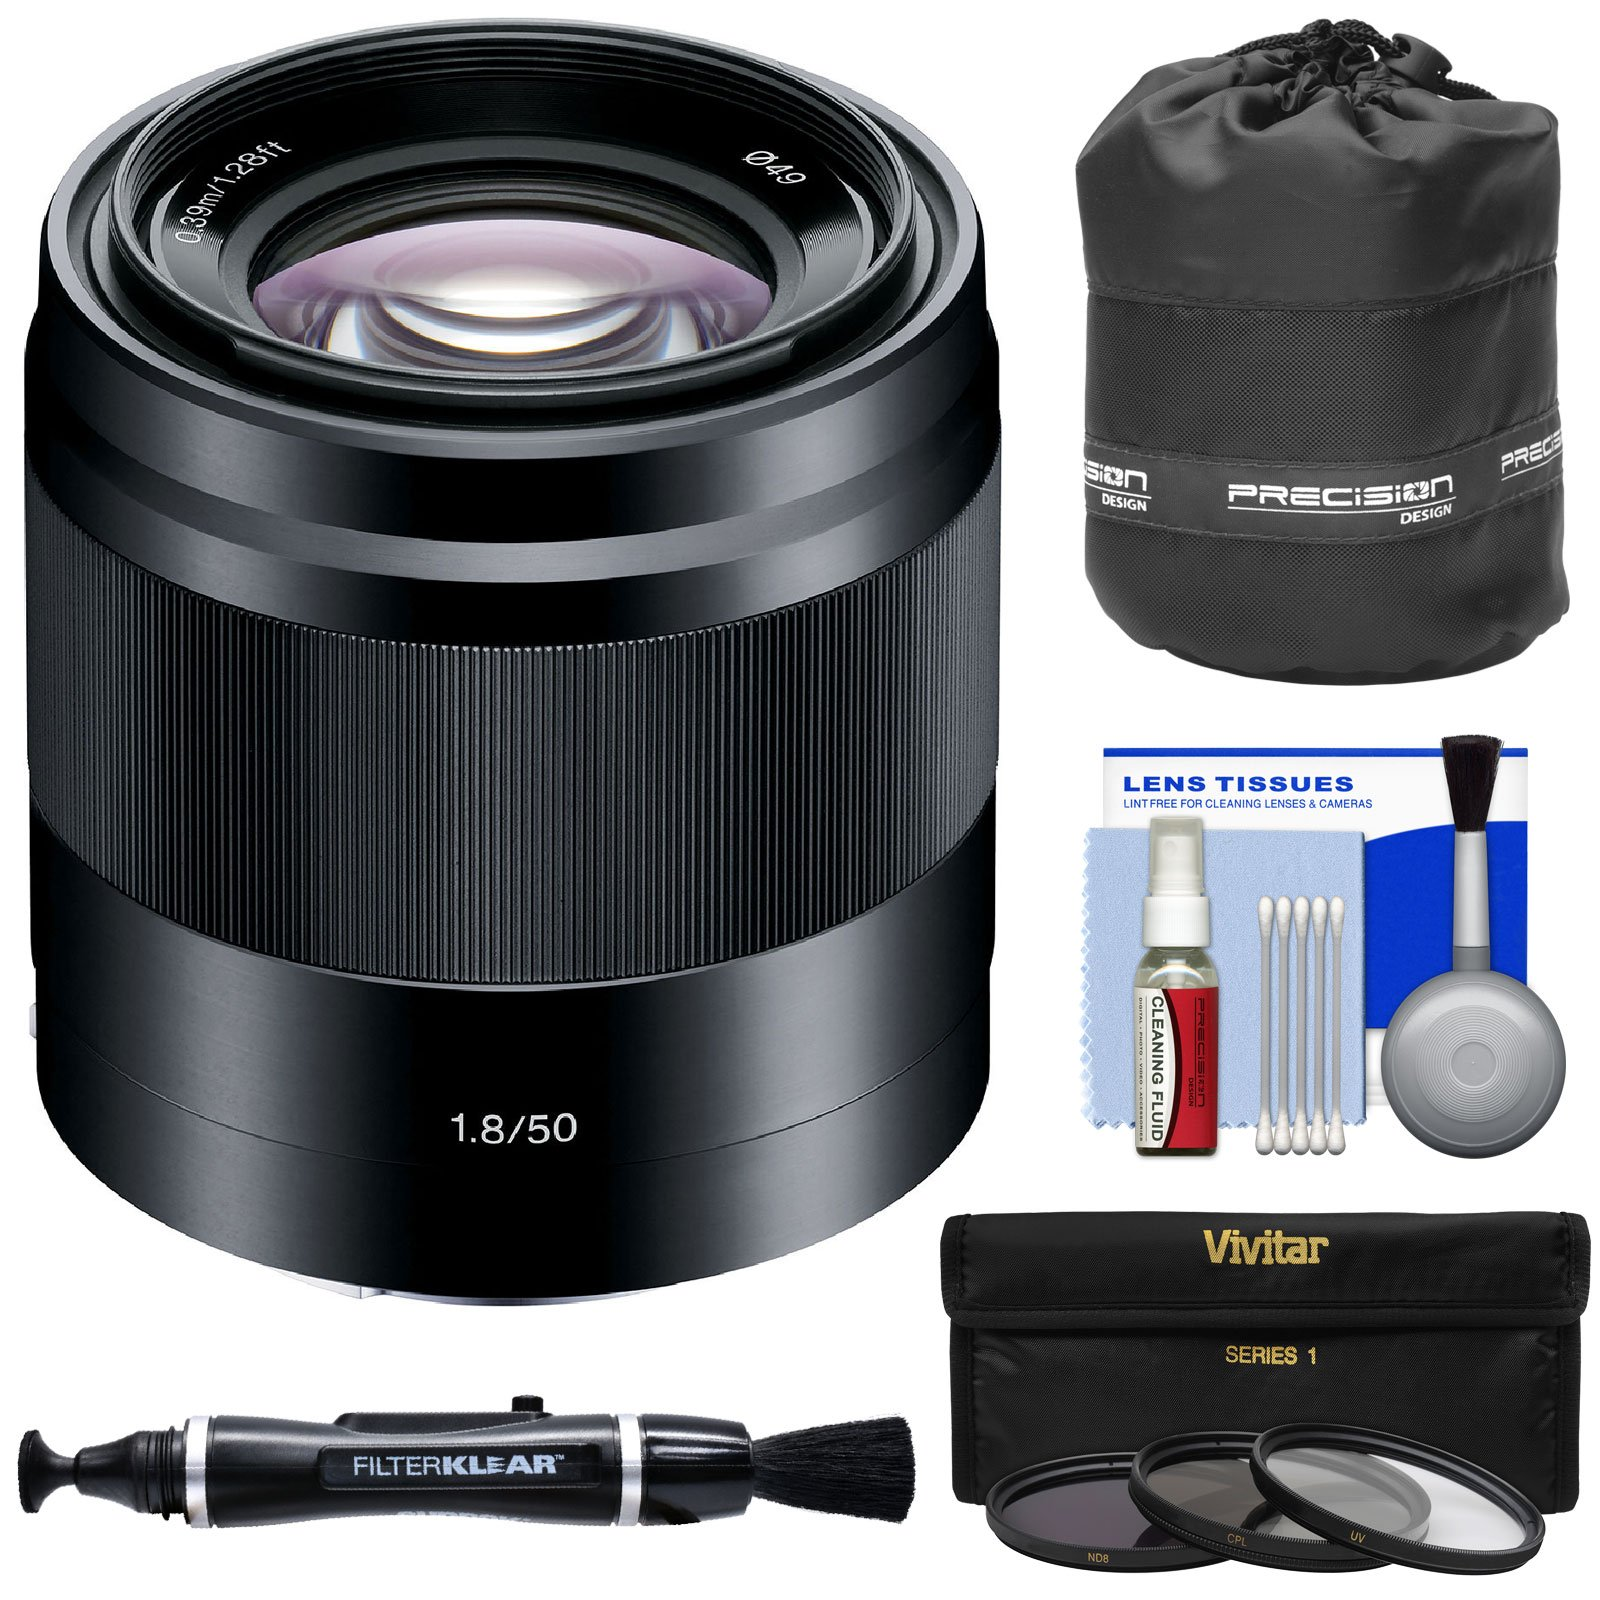 Sony Alpha E-Mount 50mm f/1.8 OSS Lens (Black) with 3 UV/CPL/ND8 Filters + Pouch + Kit